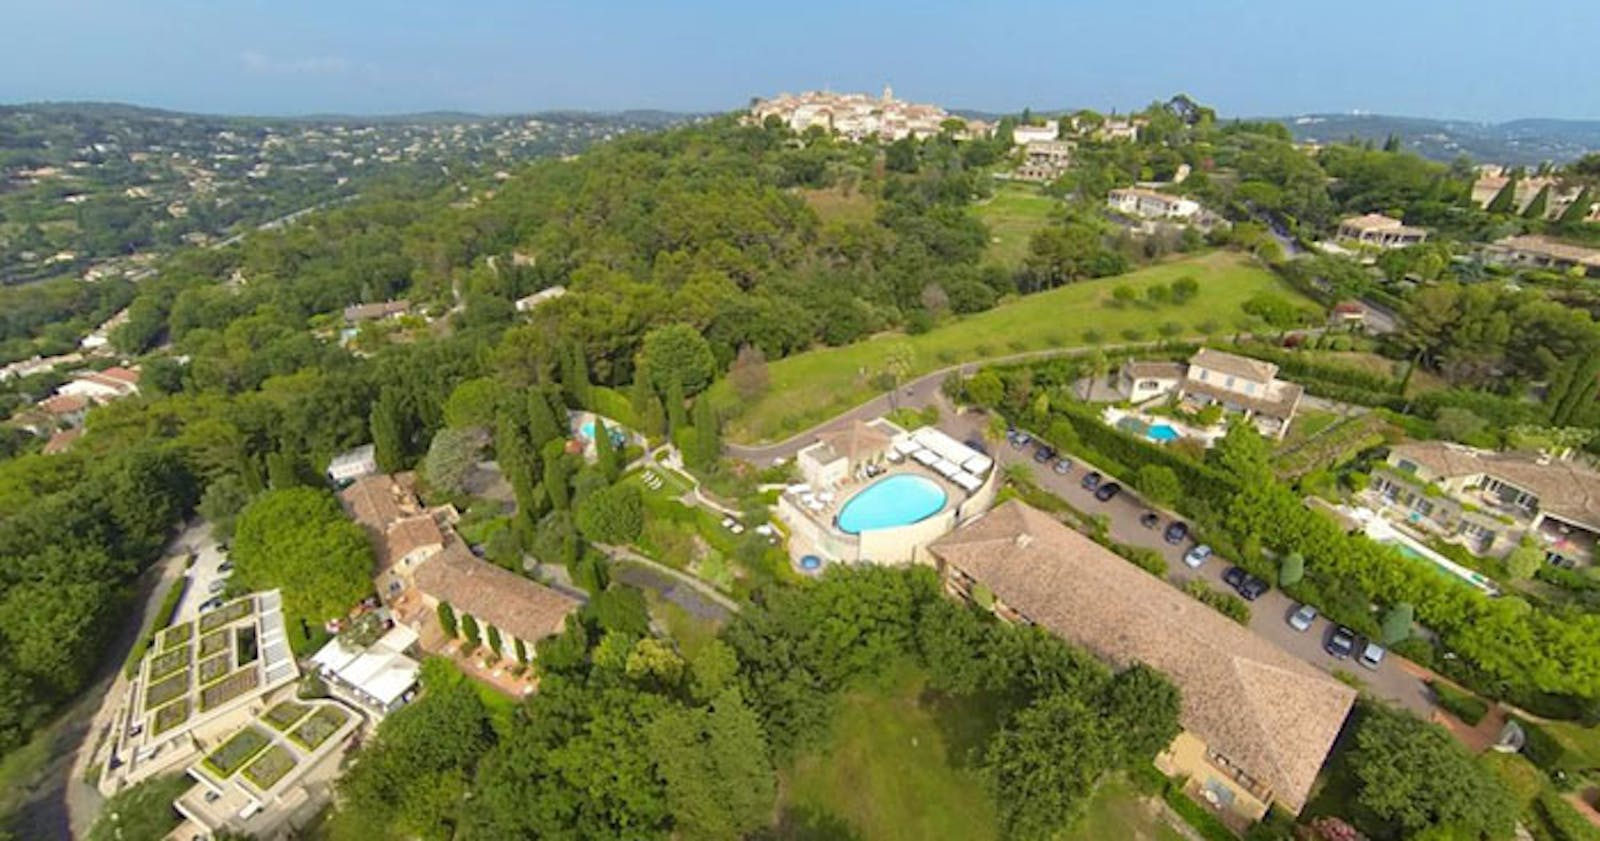 Birds Eye View of Le Mas Candille, Riviera, France